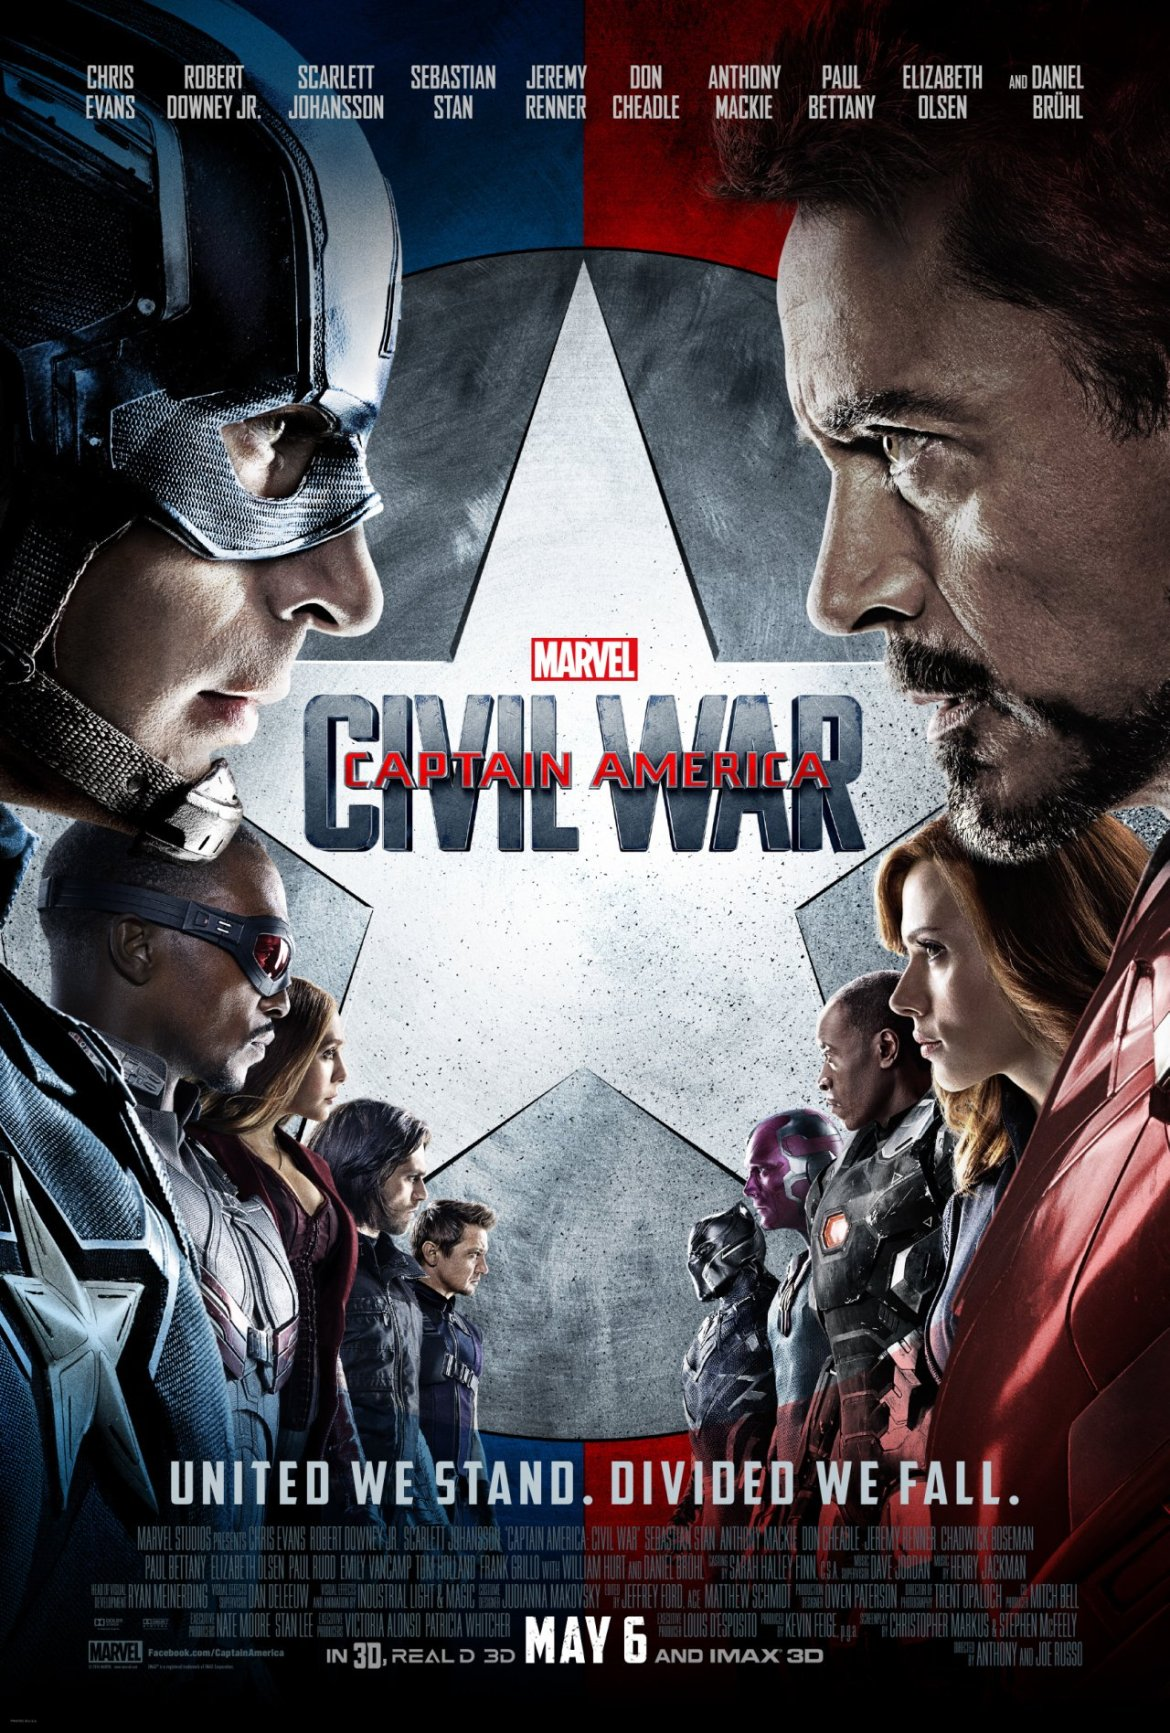 Movie Review – Marvel's Captain America: Civil War